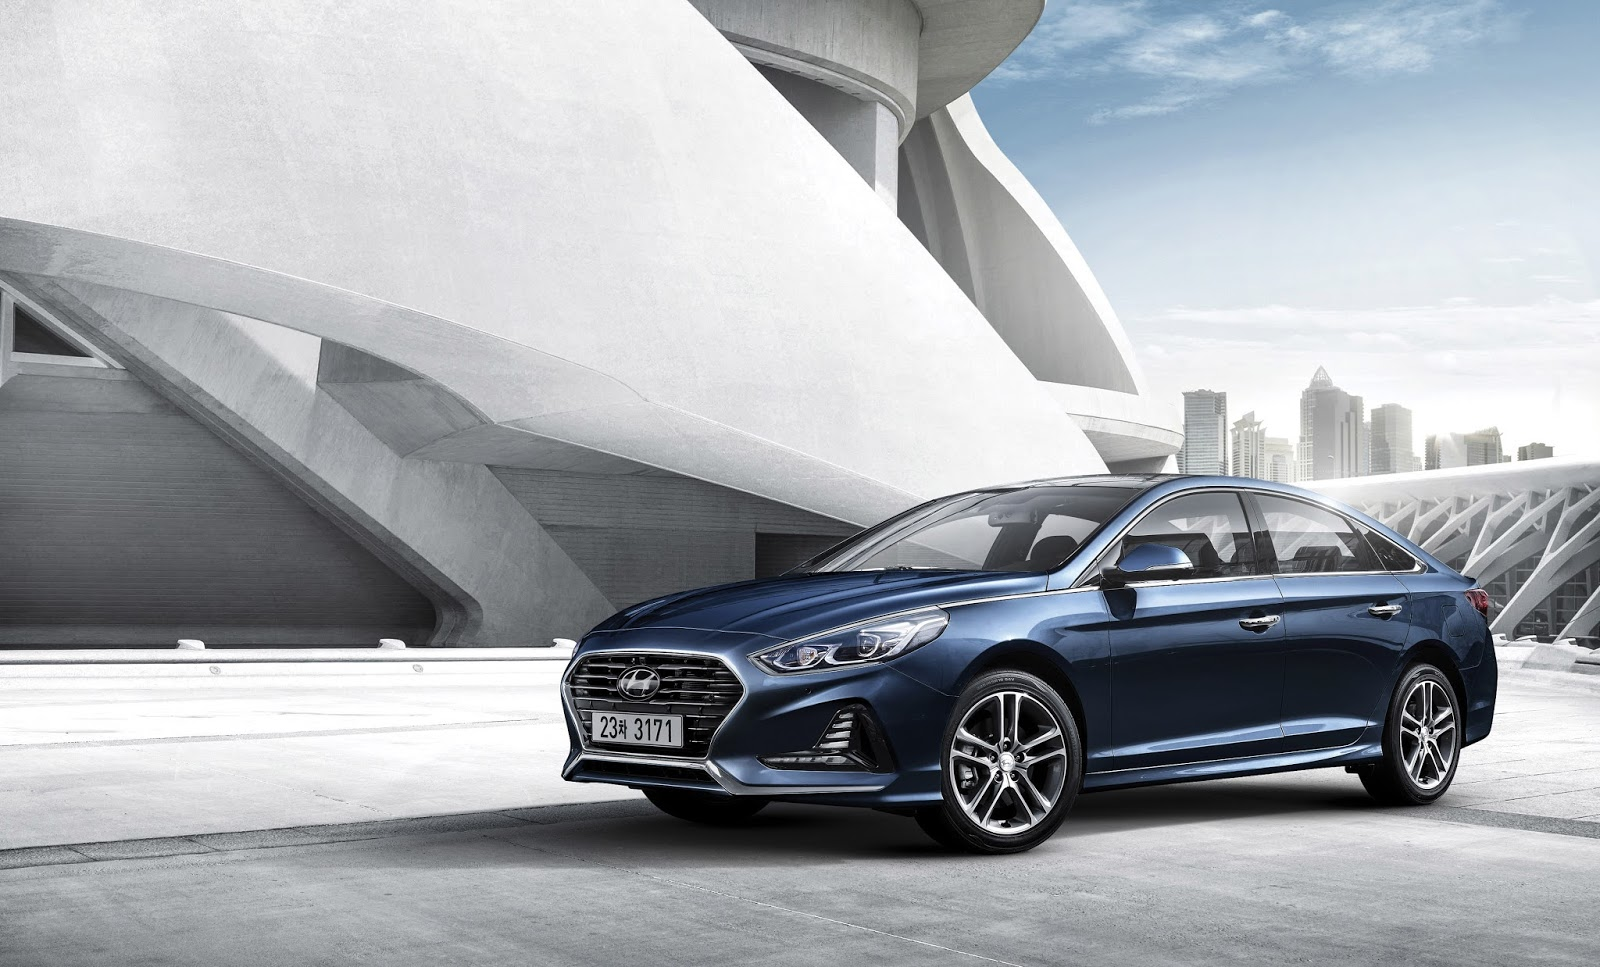 refreshed 2018 hyundai sonata shows its face in korea carscoops. Black Bedroom Furniture Sets. Home Design Ideas